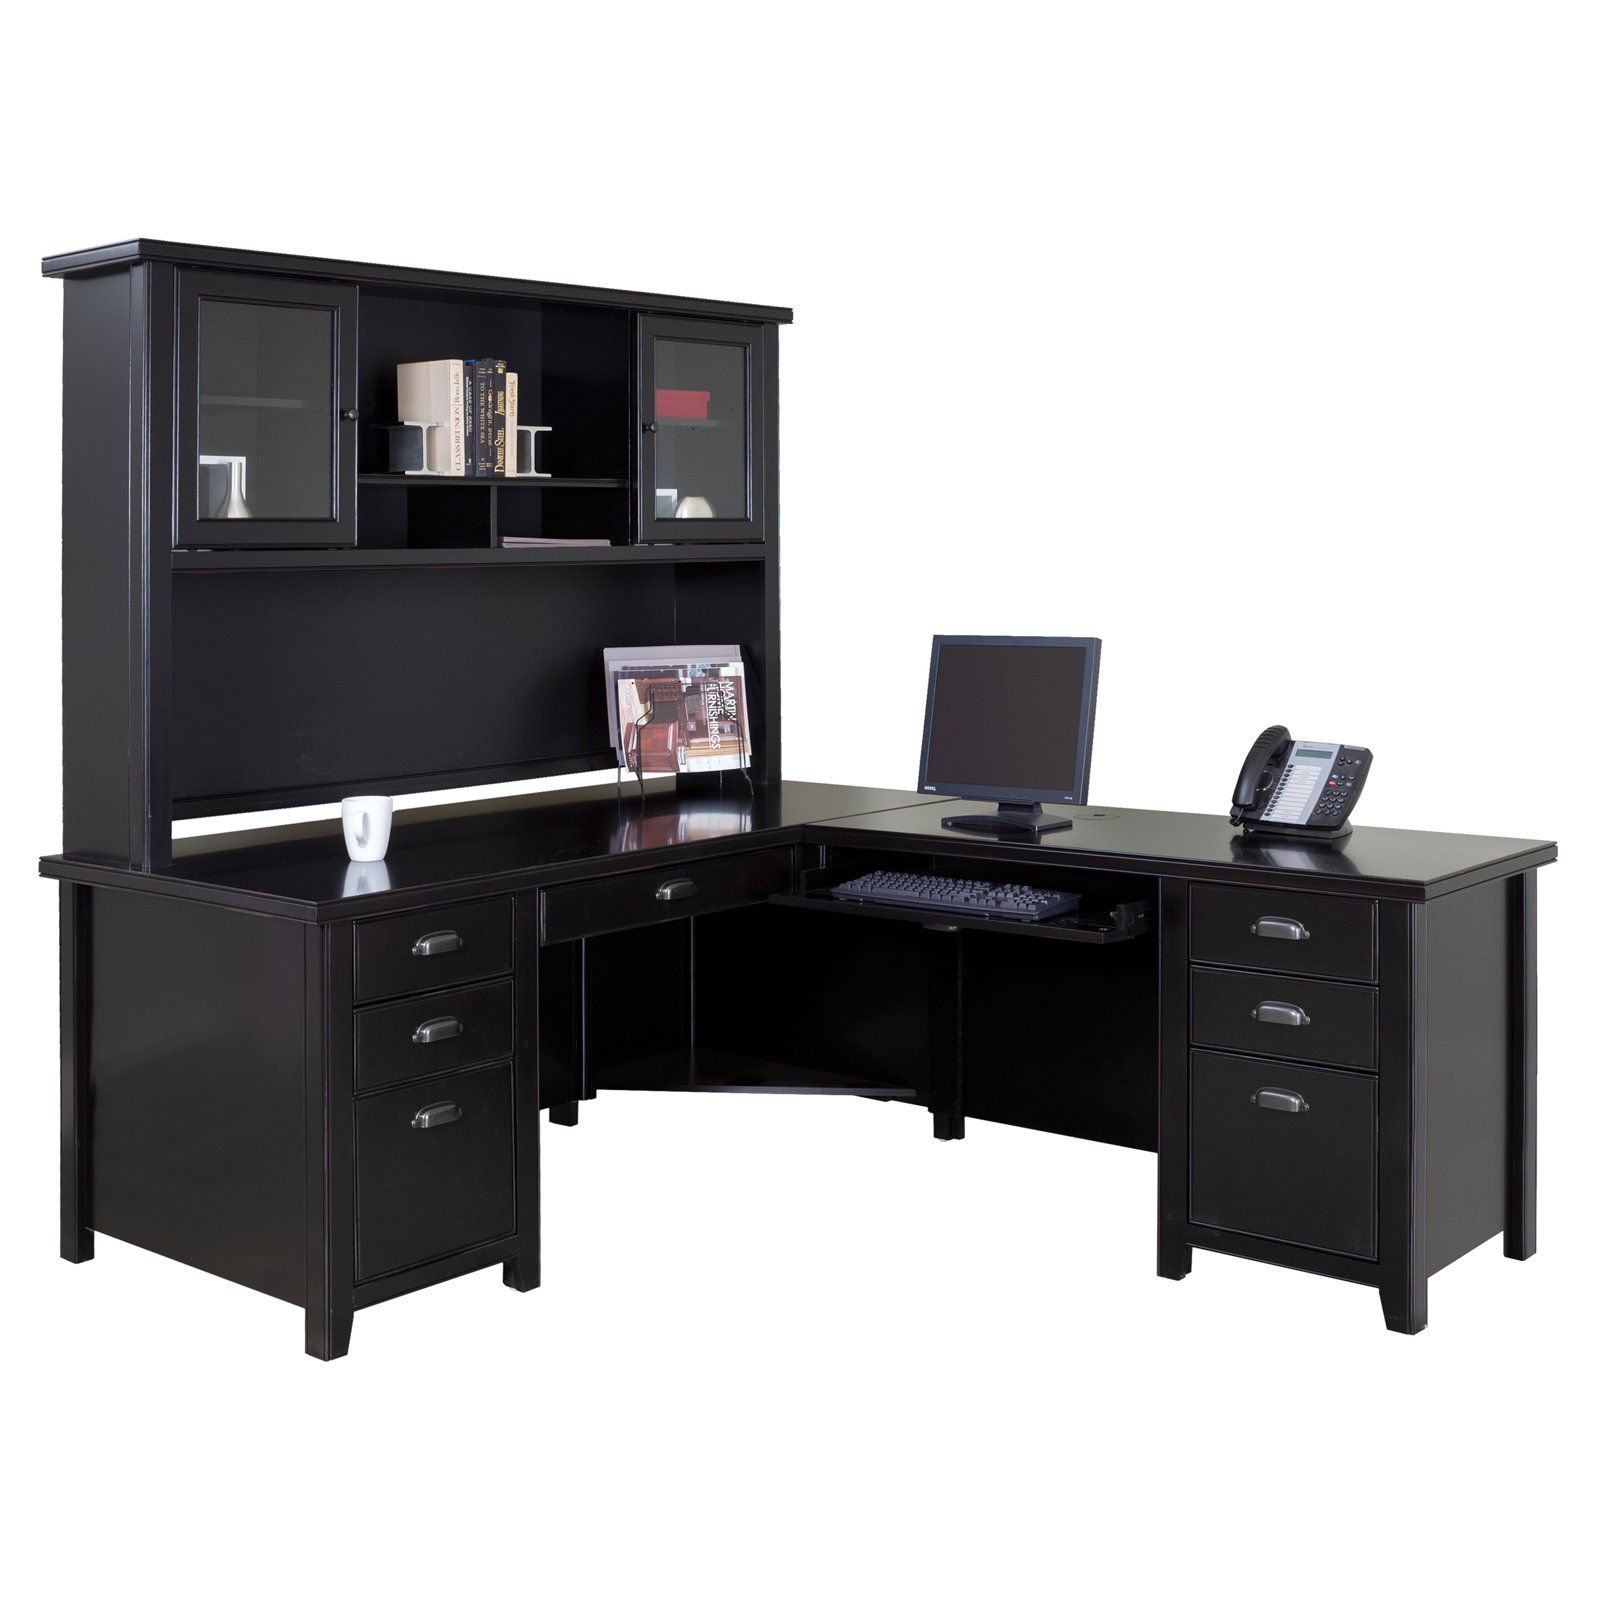 83 Best Computer Desk Images Computer Desk Desk Home Office Furniture